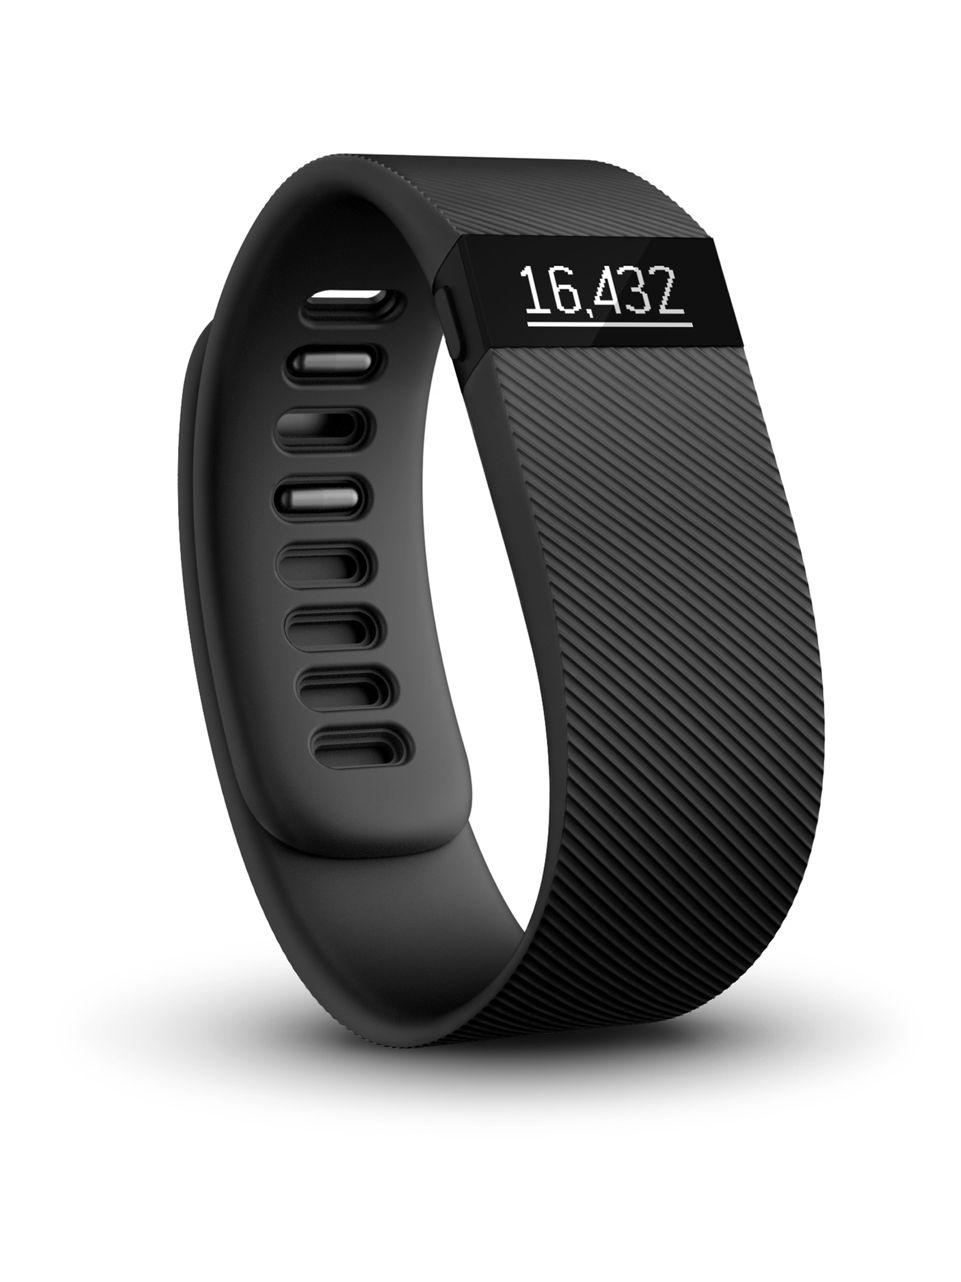 Lyst - Fitbit Charge Activity Wristband in Black for Men